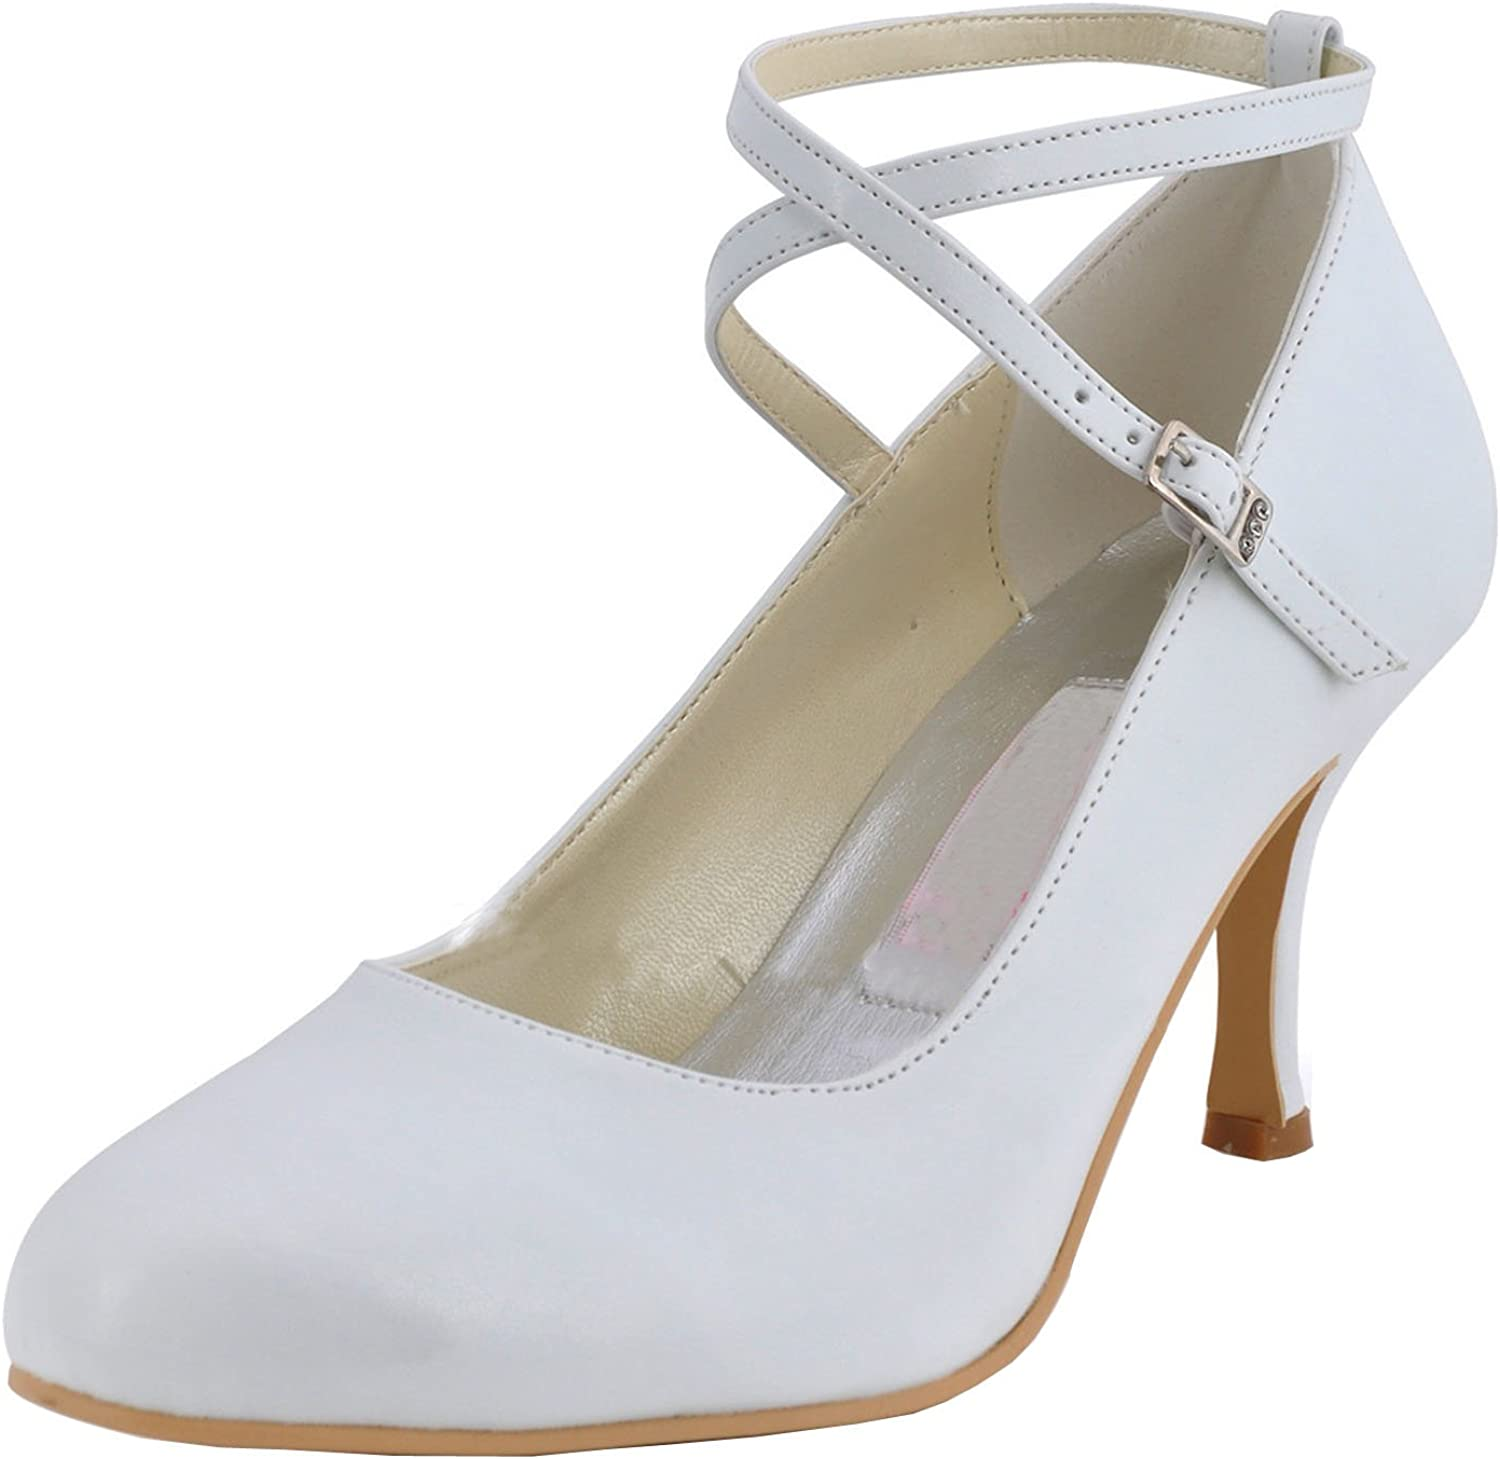 Minishion MZ615 Womens Round Toe High Heel Mary Jane Bridal Wedding Satin Buckle Pump shoes